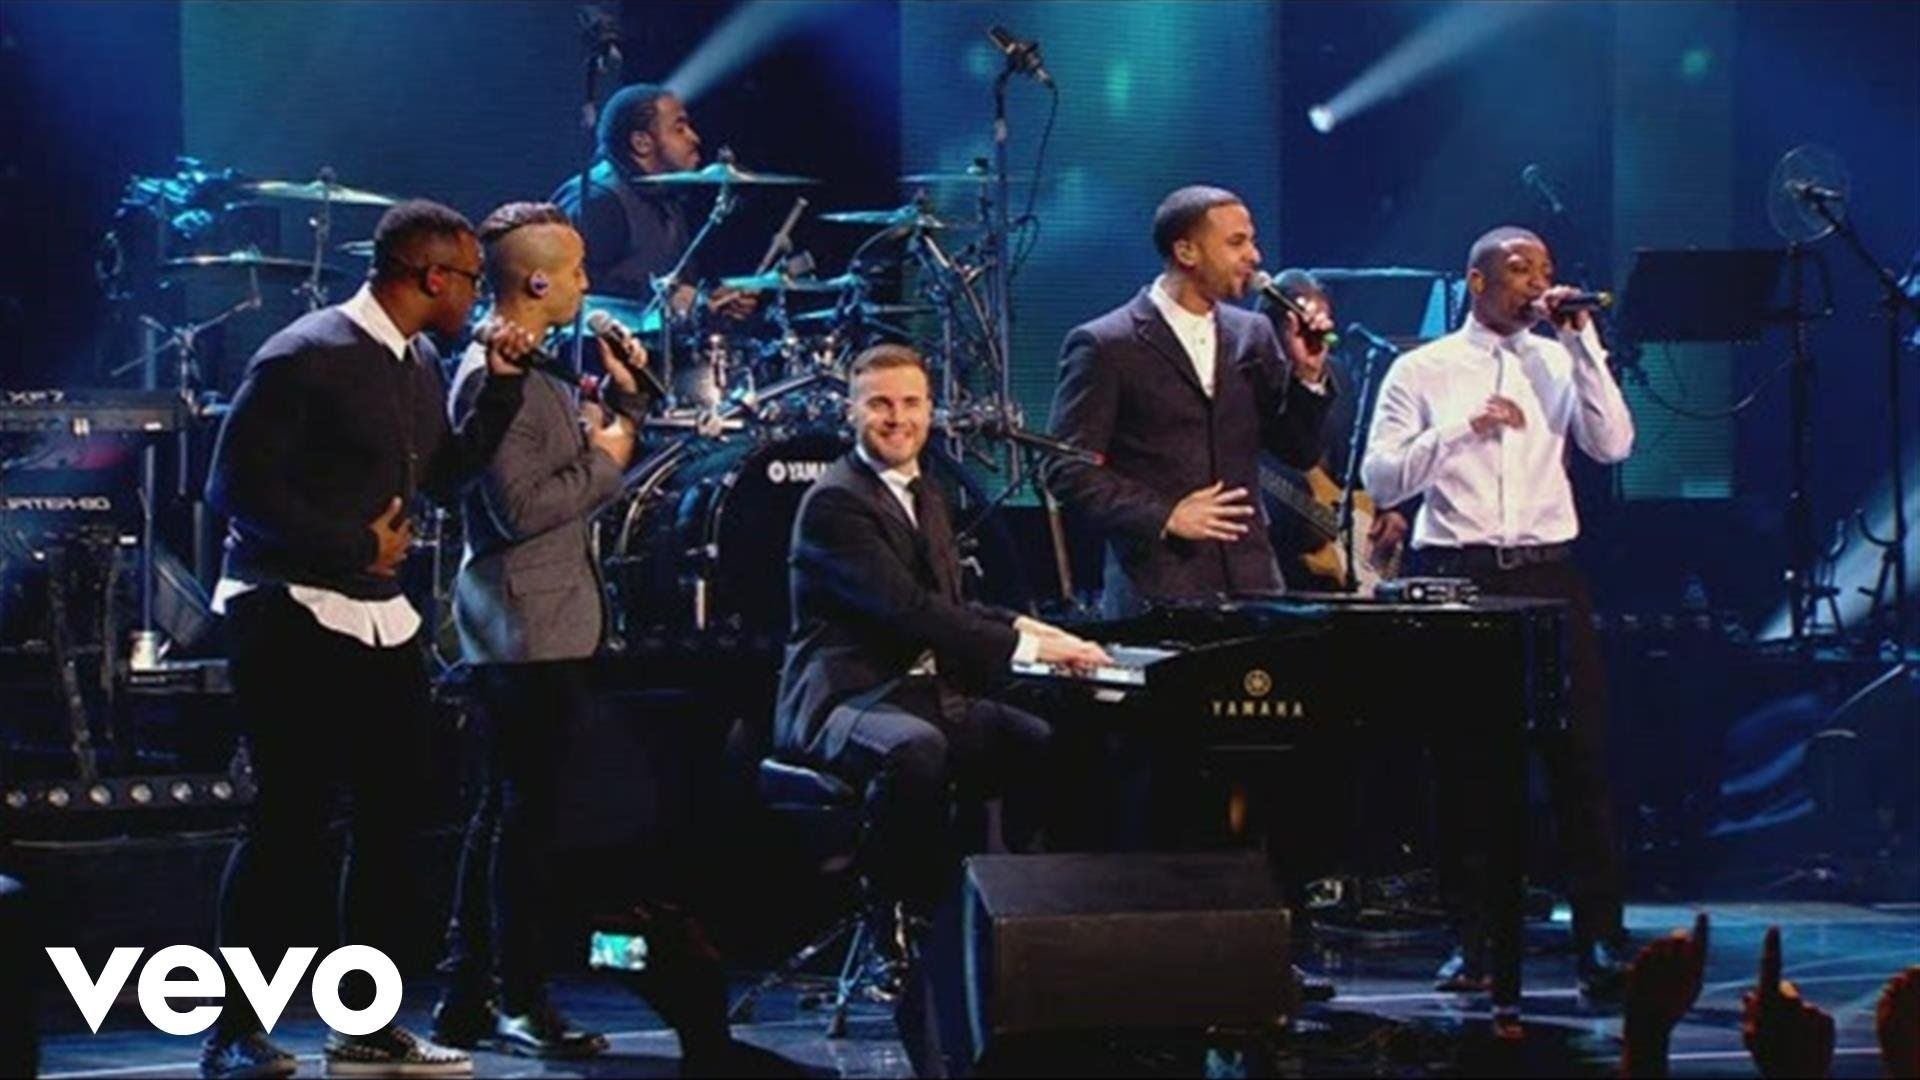 Gary Barlow - Back For Good ft  JLS | Songs that move me